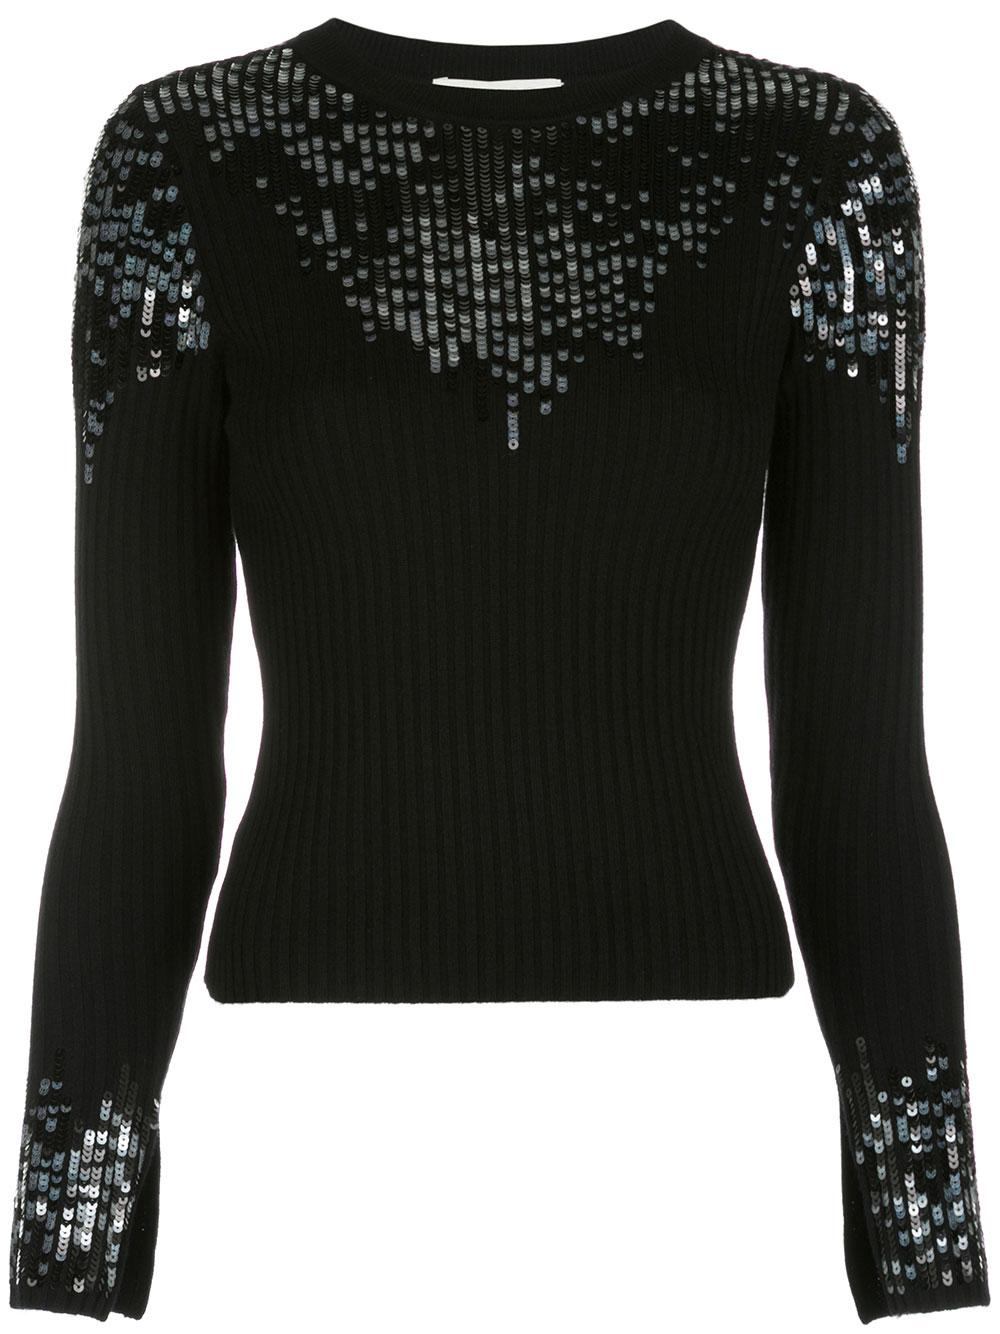 Ribbed Sequin Lace Crew Neck Top Item # 120-2007-K